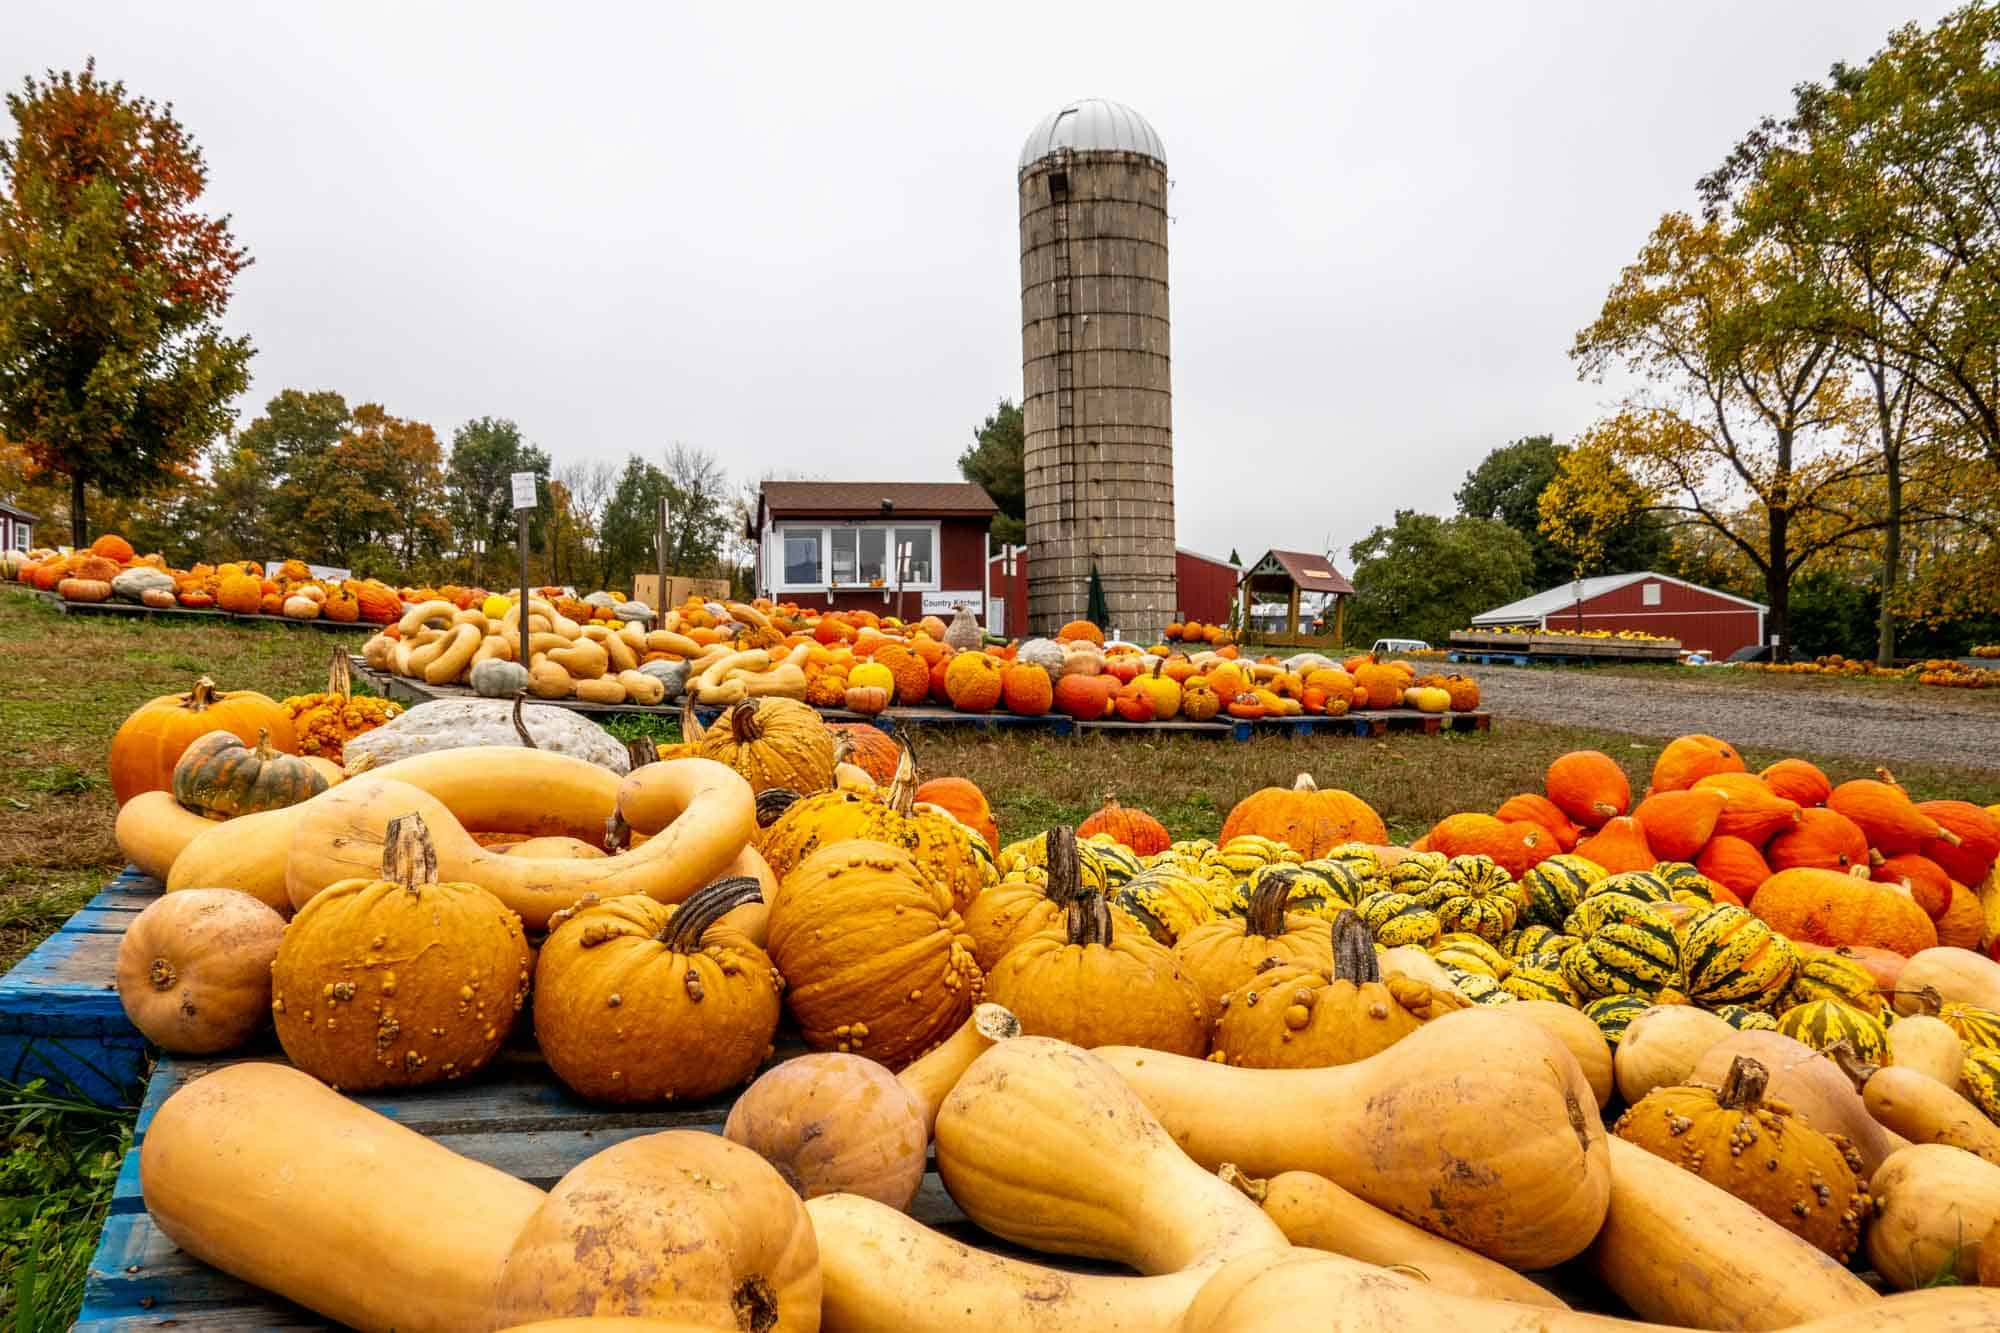 Piles of pumpkins and gourds on wooden pallets near a tall grain silo